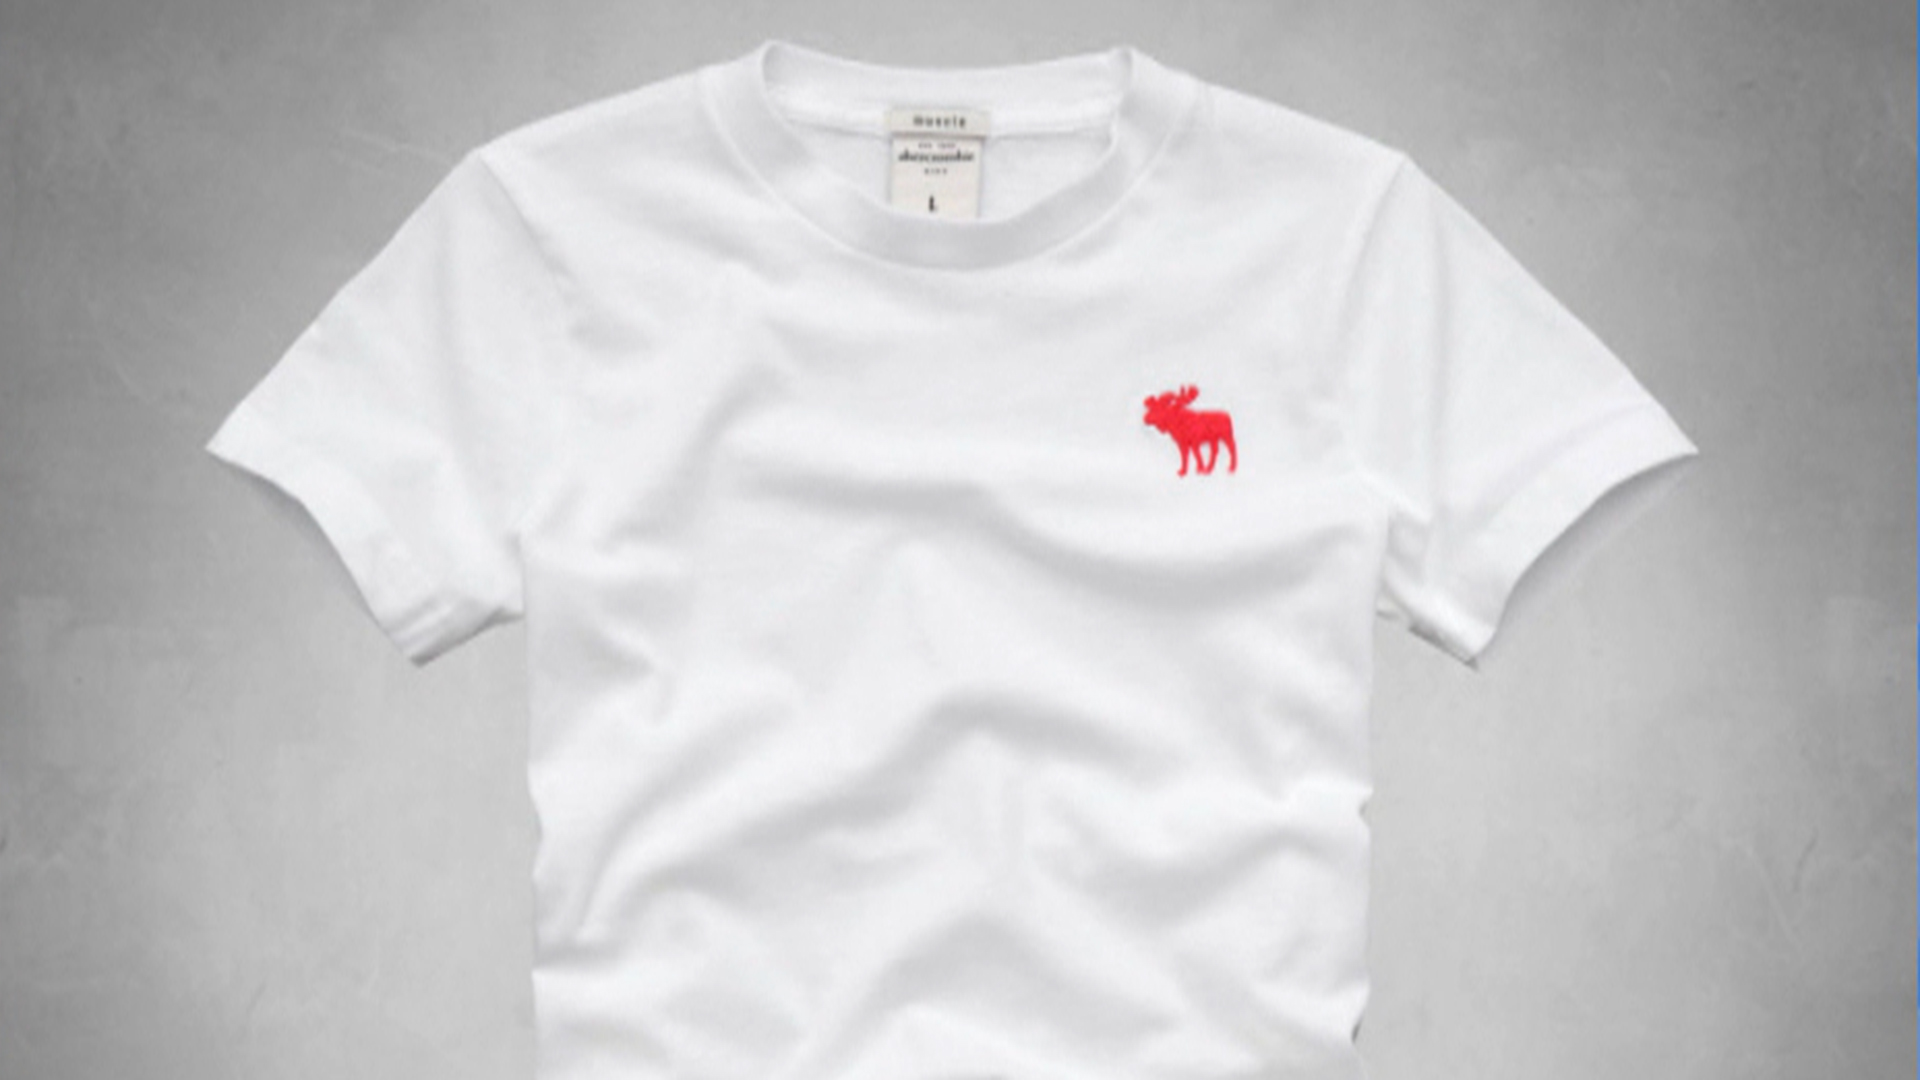 Abercrombie  Fitch to remove moose logo  TODAYcom